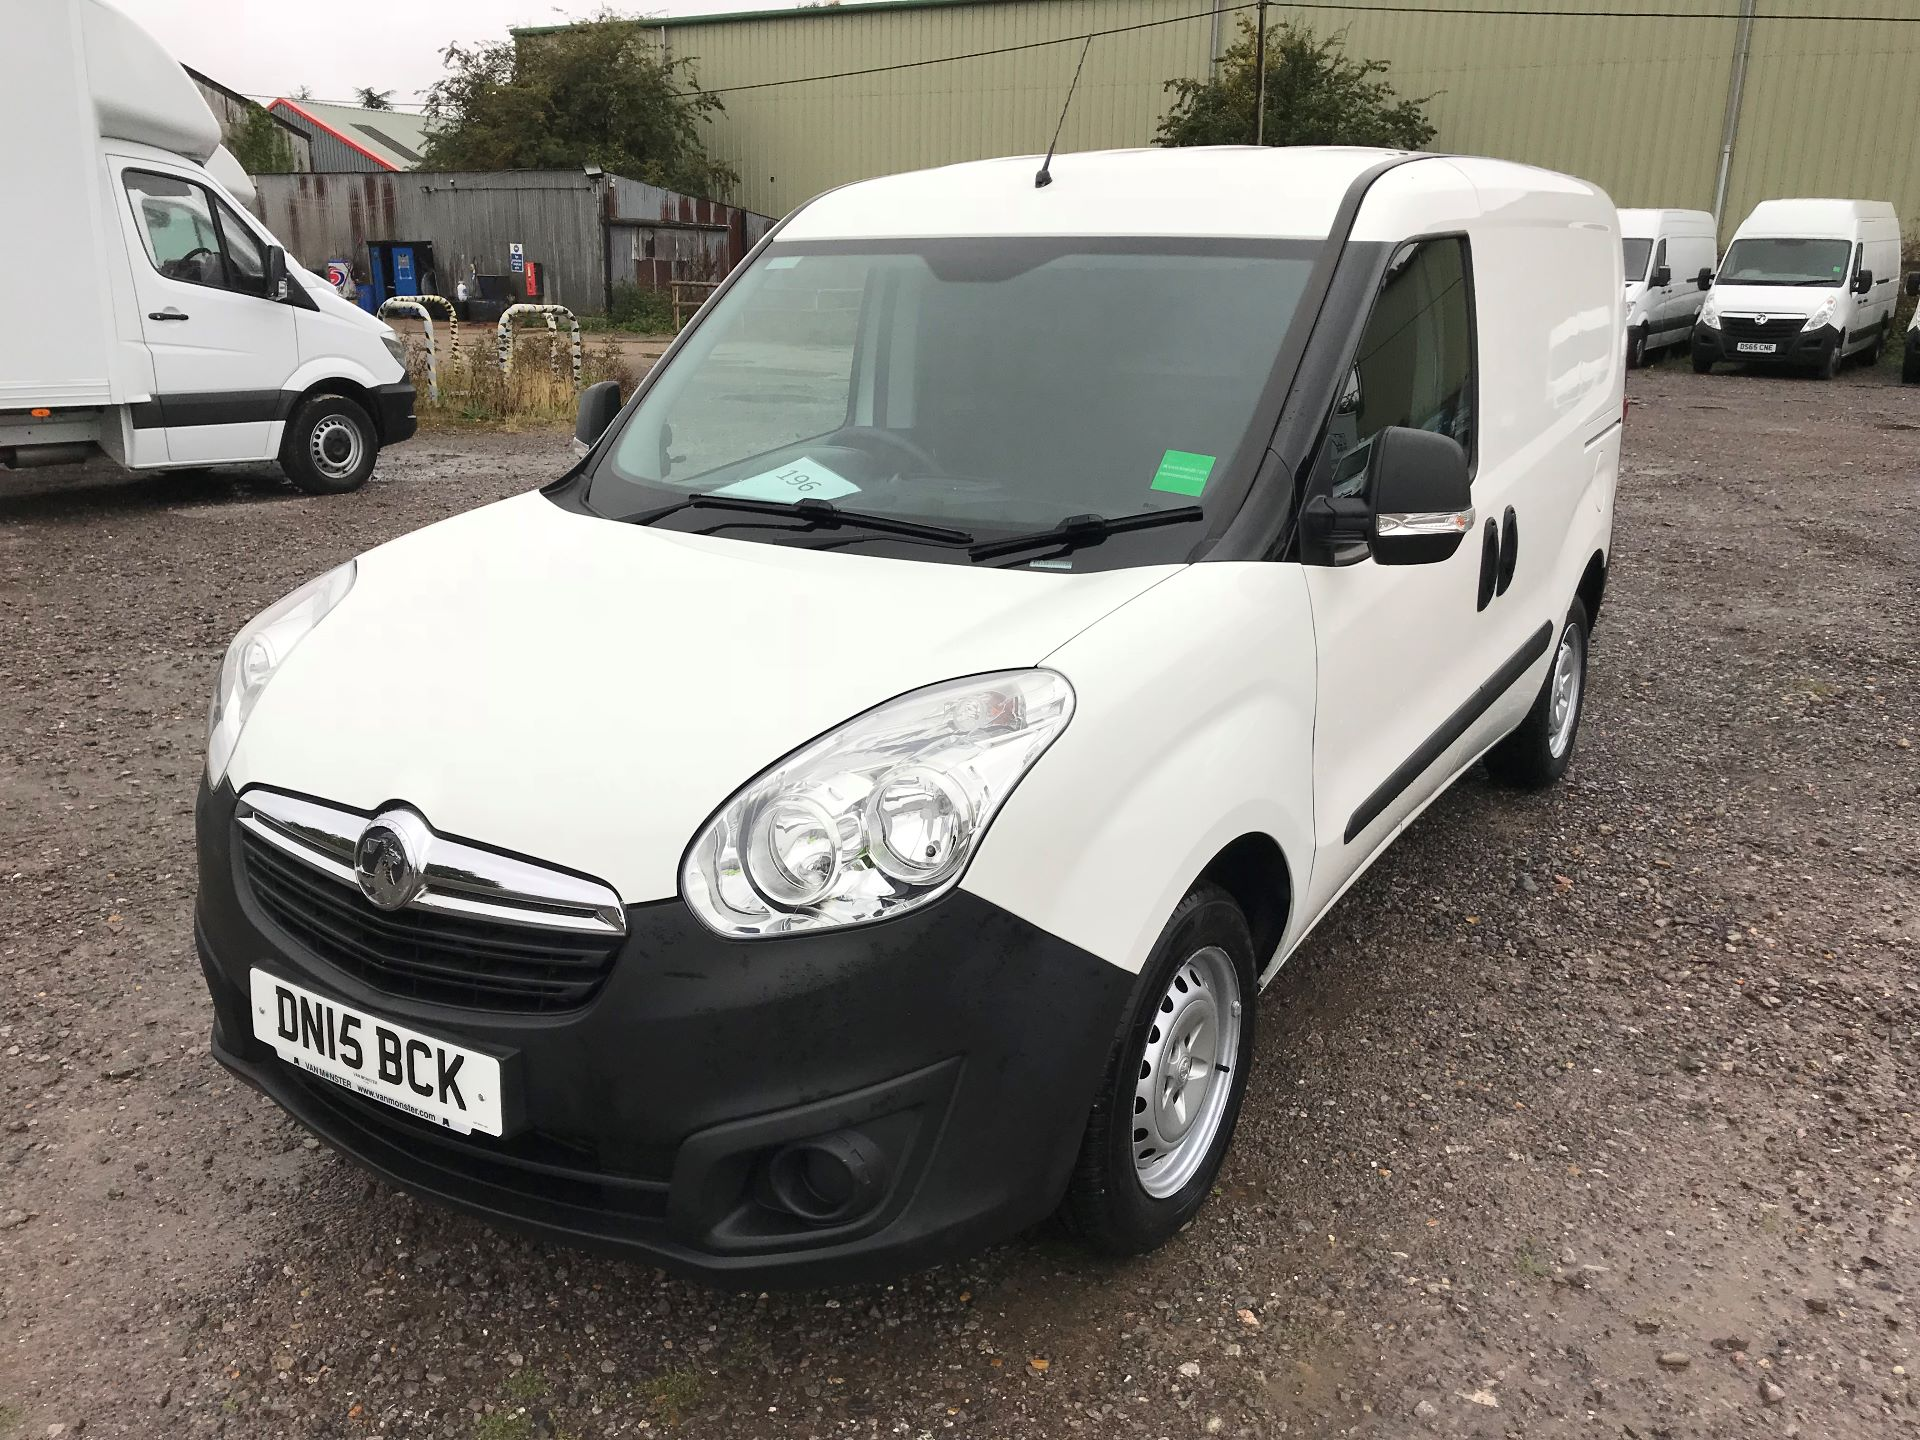 2015 Vauxhall Combo  L1 H1 2000 1.3 16V  EURO 5 (DN15BCK) Image 3